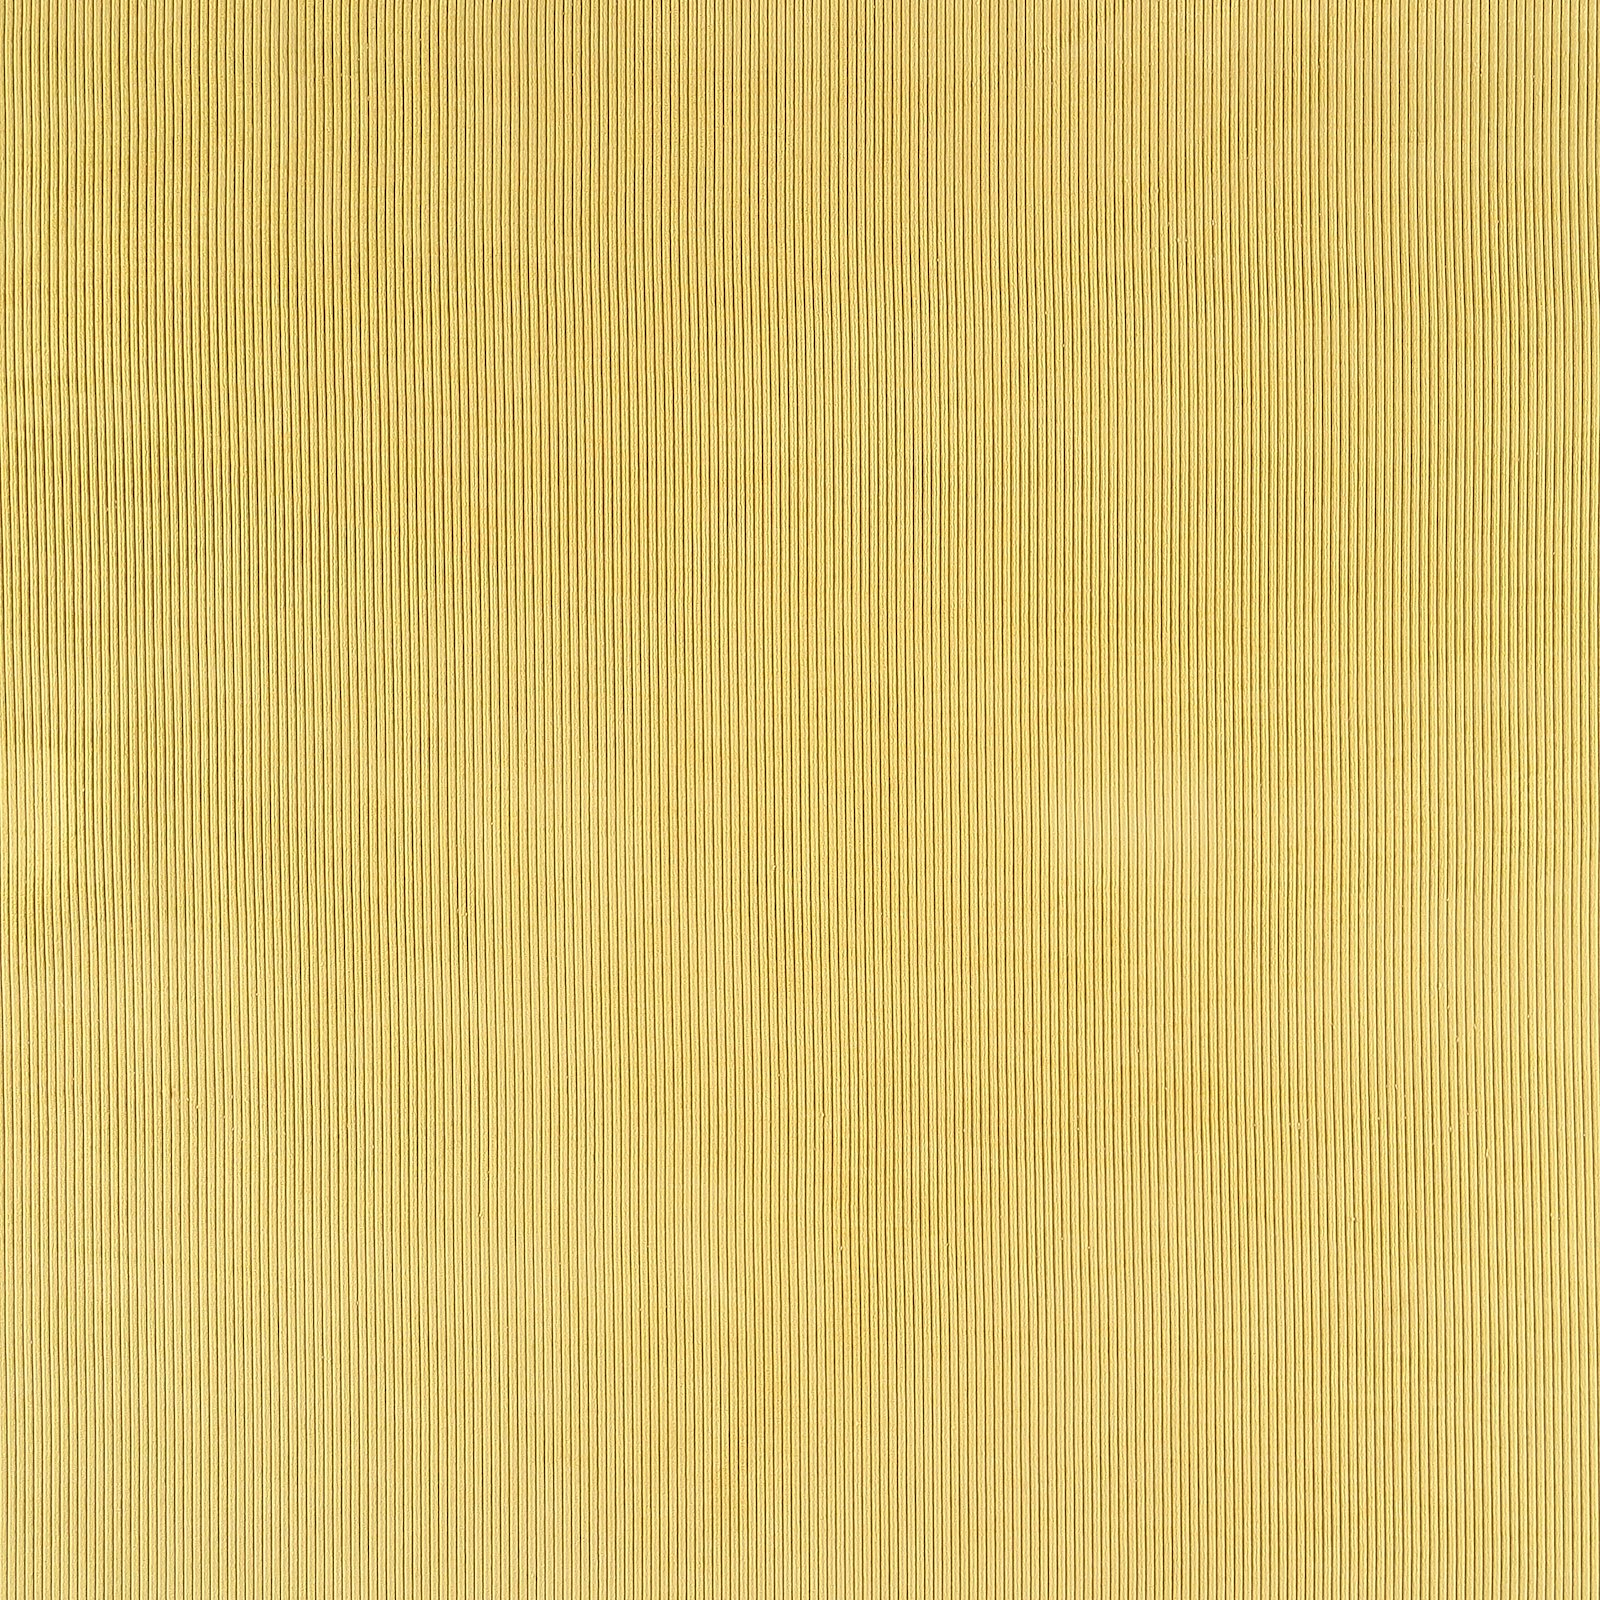 Upholstery corduroy 6 wales olive yellow 824154_pack_solid